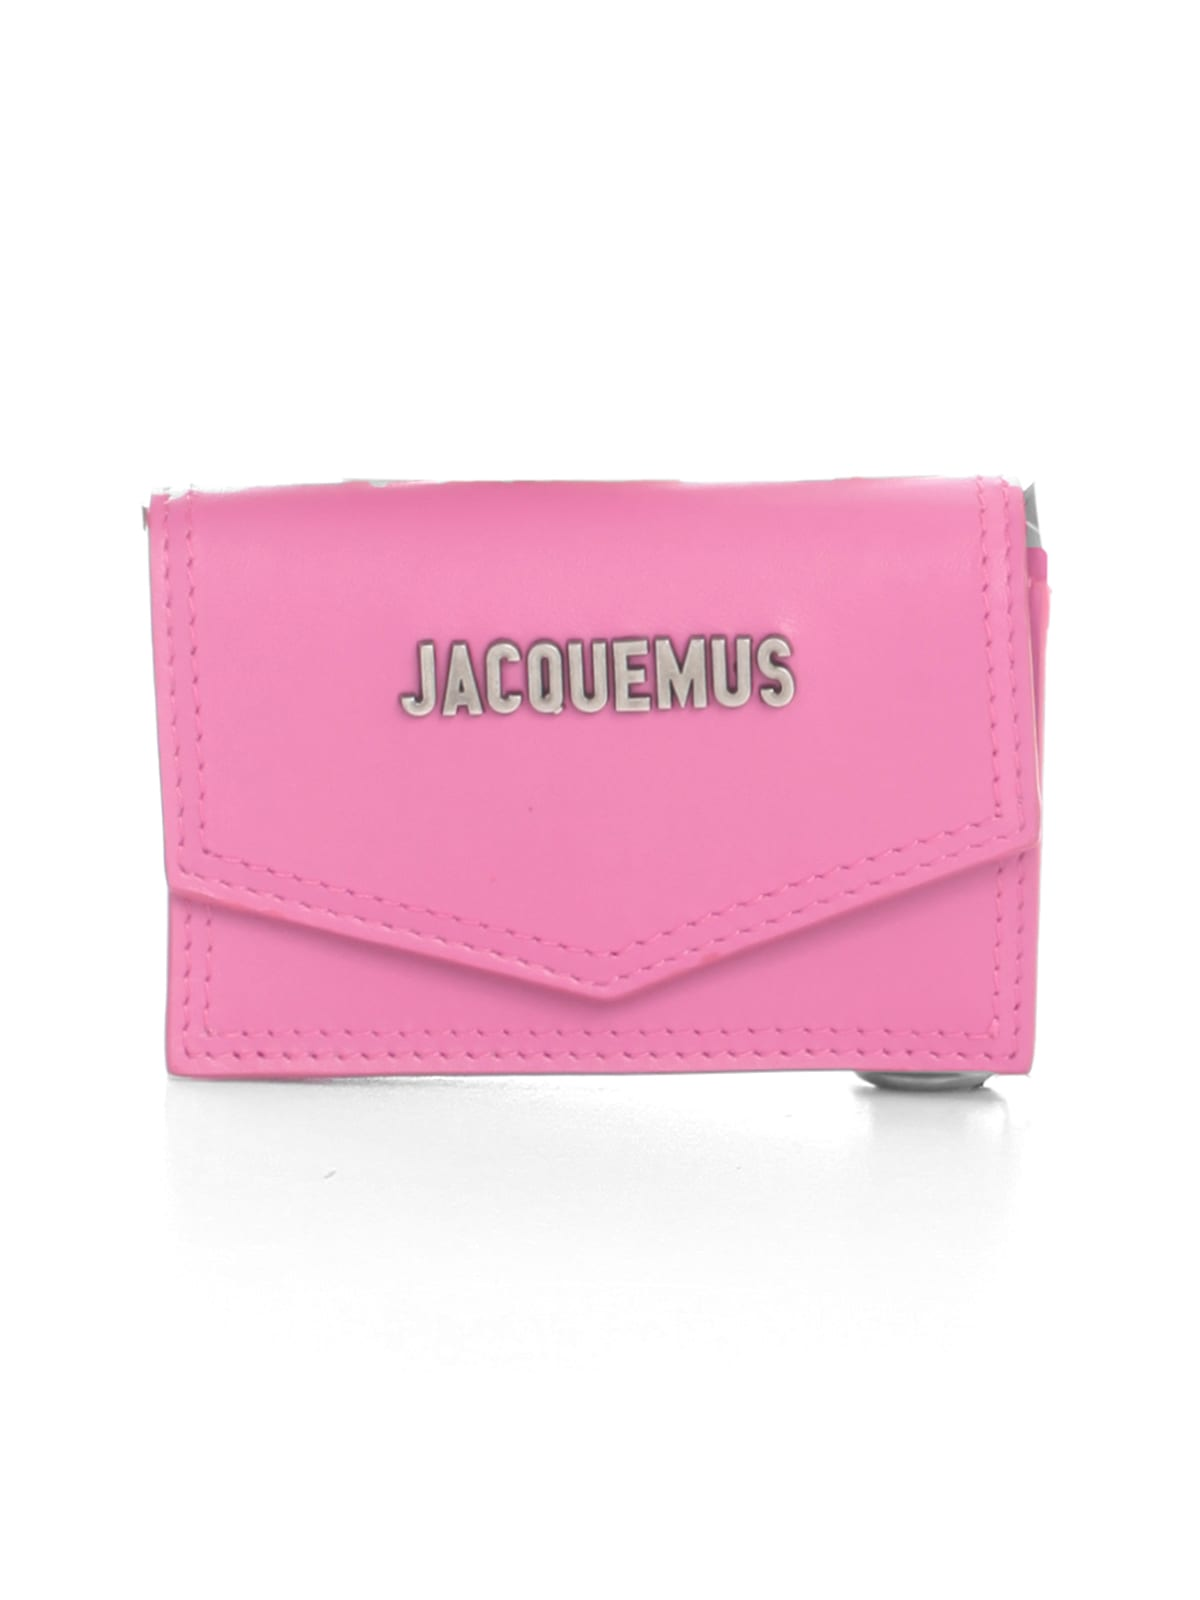 Jacquemus Le Porte Azur Small Leather Crossbody In Pink